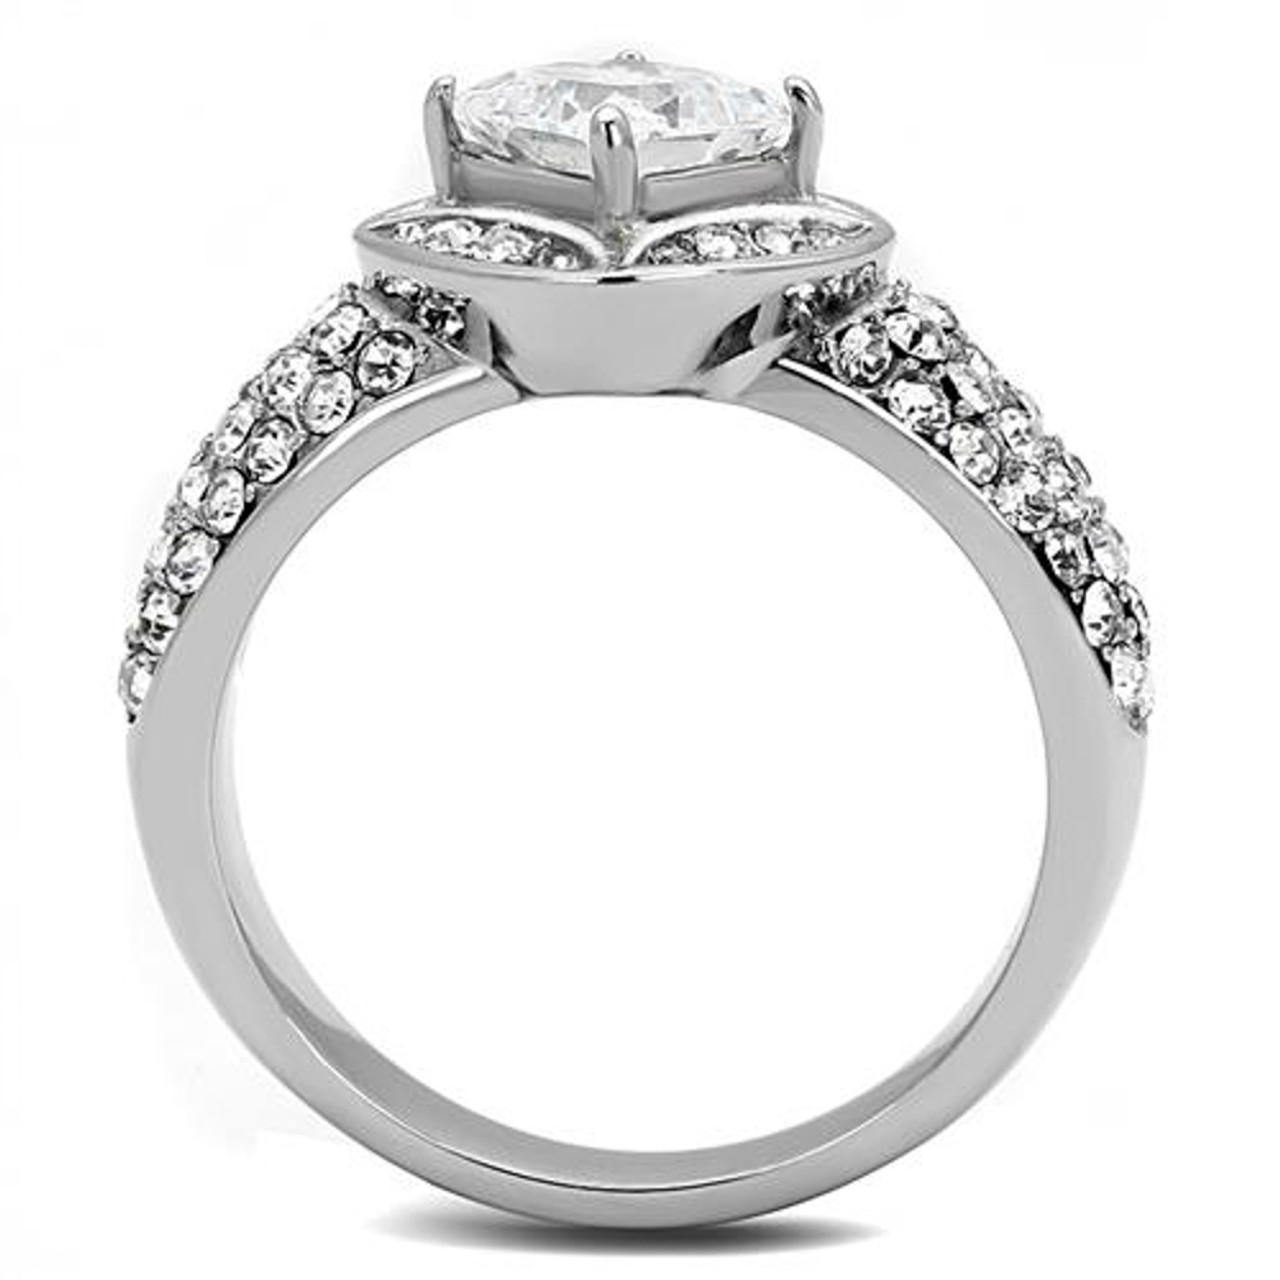 3.50 CT RADIANT CUT CZ SILVER STAINLESS STEEL ENGAGEMENT RING WOMEN/'S SIZE 5-10